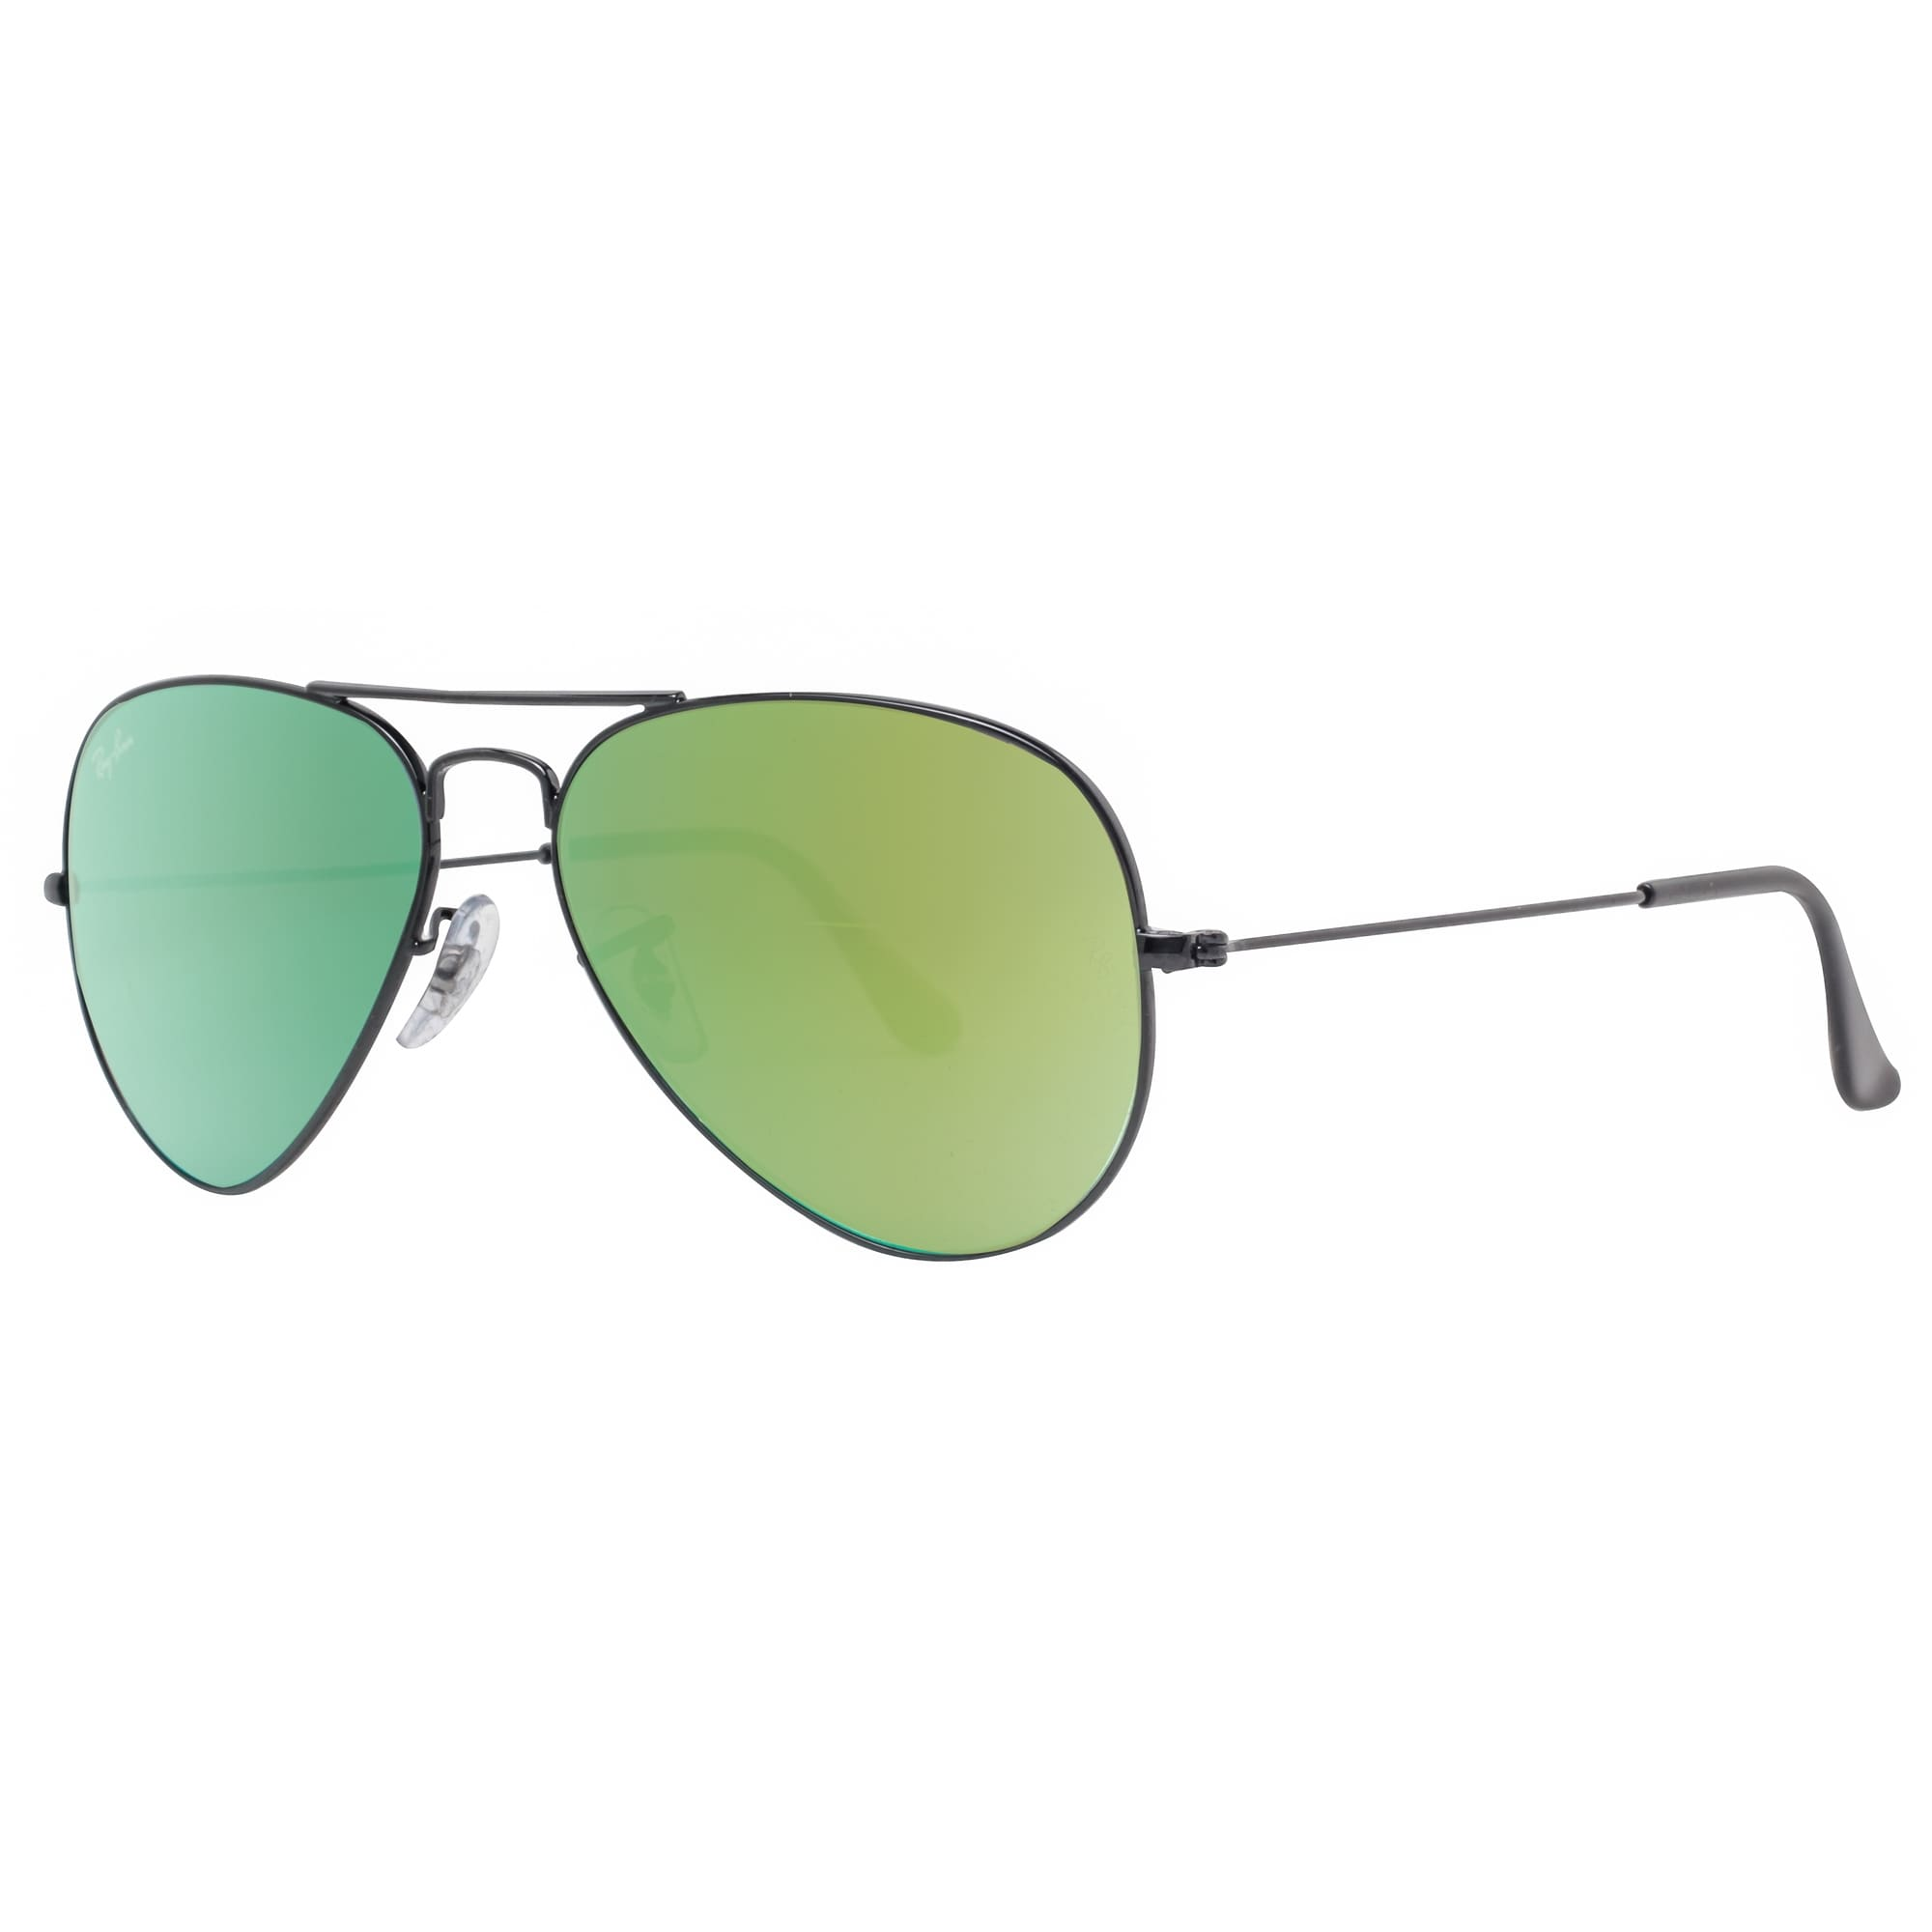 607c32ced6 Shop Ray Ban RB3025 002 4J 55mm Black Green Gradient Flash Aviator  Sunglasses - 55mm-14mm-135mm - Free Shipping Today - Overstock.com -  18794037